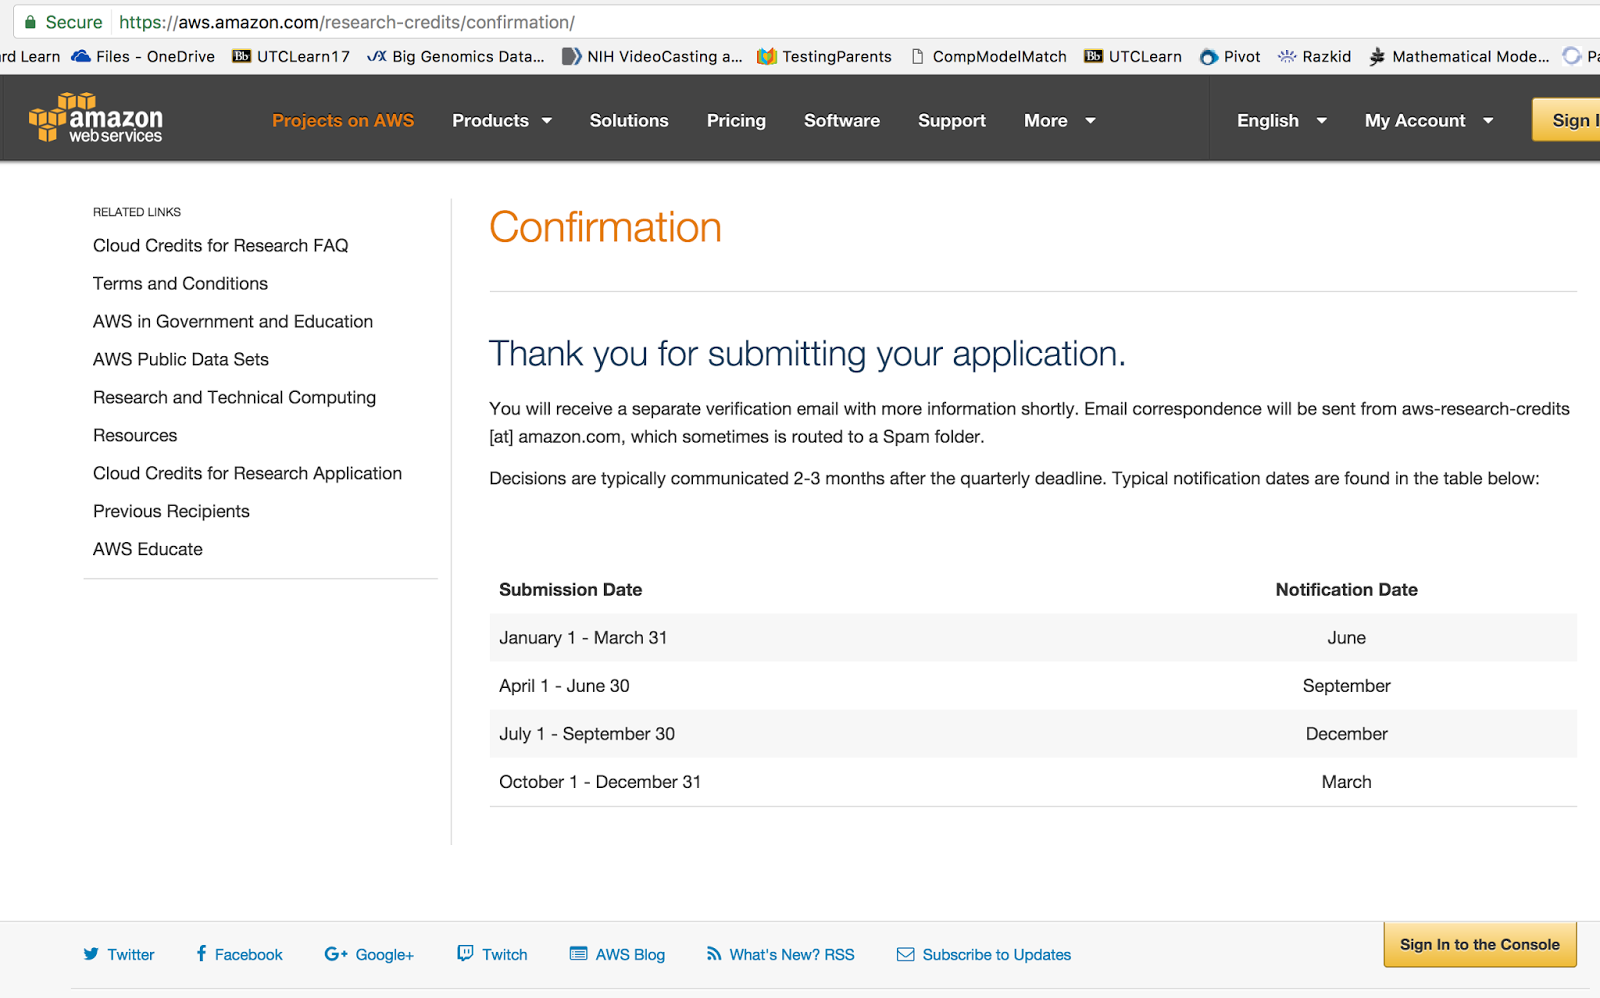 Open Notebook: AWS research grant application